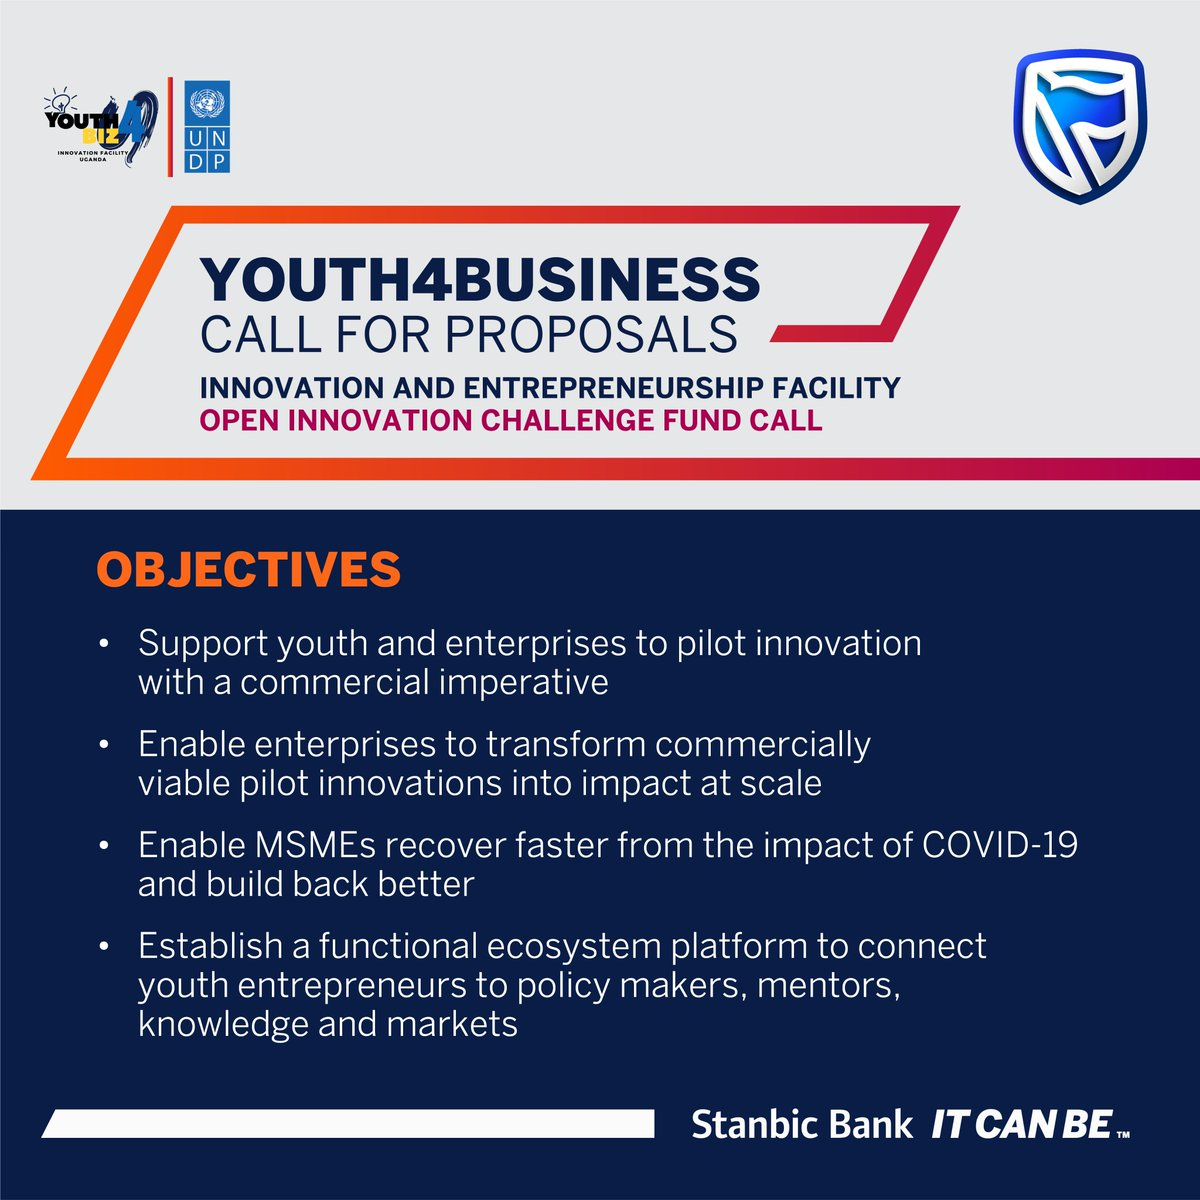 CALL FOR PROPOSALS: @UNDPUganda in collaboration with Stanbic Uganda Holdings Limited (SUHL) hereby invites you to submit a Proposal to an Open Innovation Challenge Fund Call for the Youth4Business Innovation & Entrepreneurship Facility. #ItCanBe pic.twitter.com/smUzd9GPvK